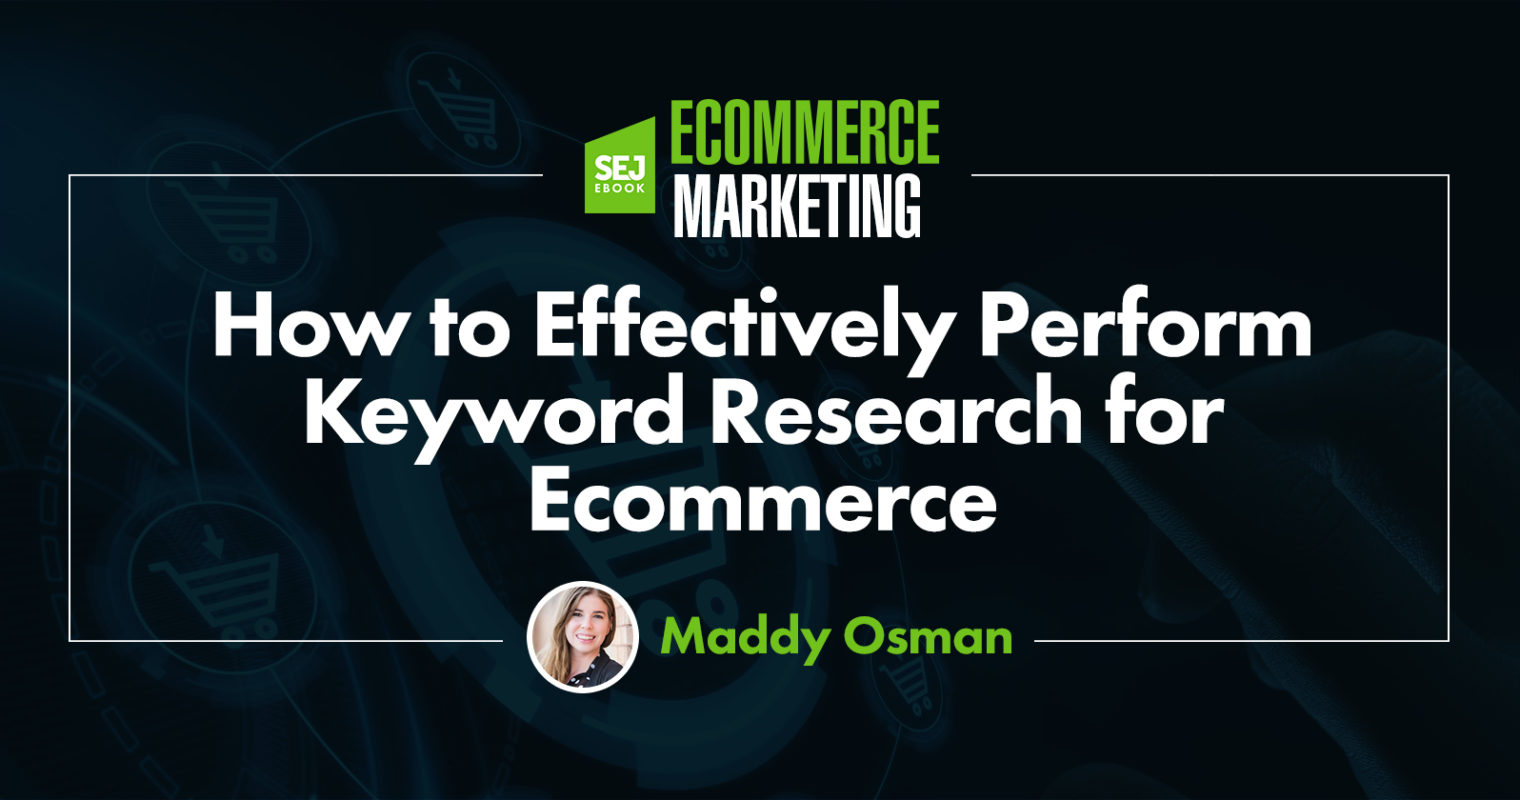 How to Effectively Perform Keyword Research for Ecommerce